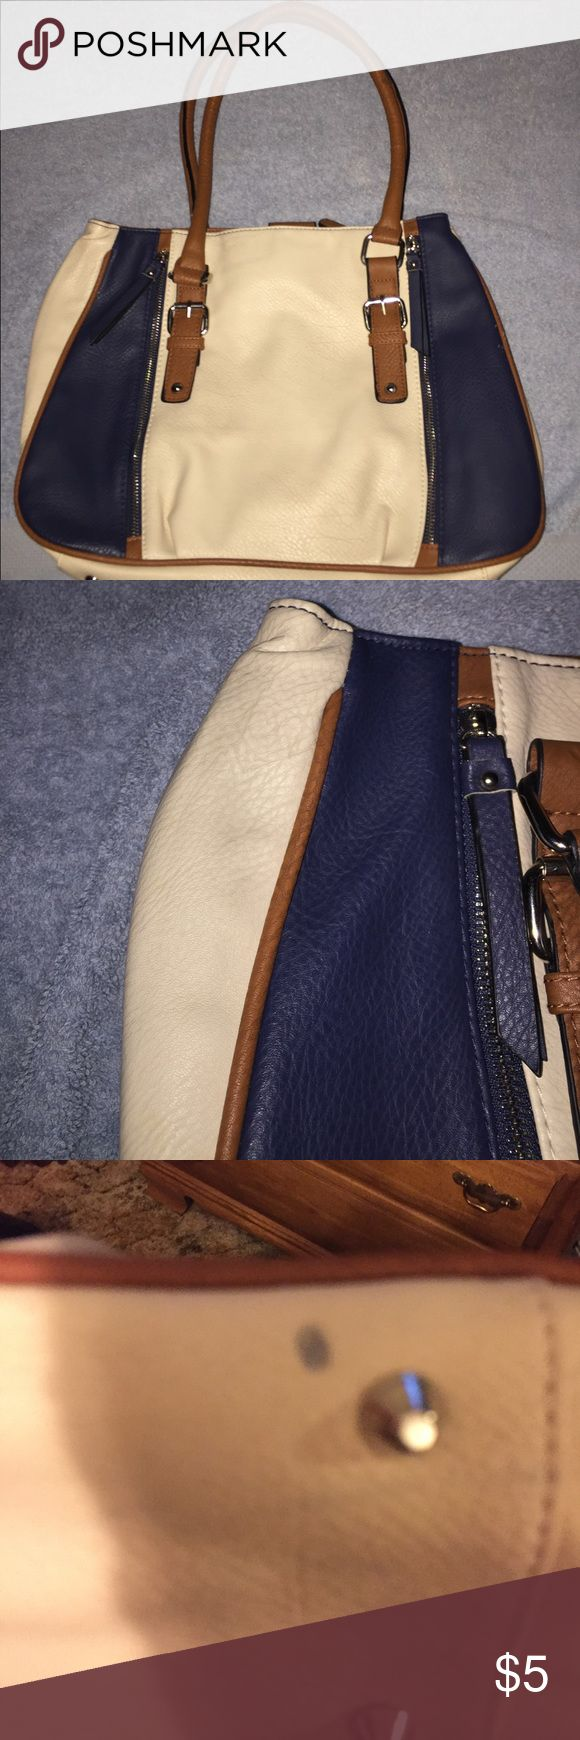 Cream and Navy purse This cute cream and navy purse is showing a little wear on the side (pic 2) and has a spot on the bottom (pic 3) but otherwise is in great shape. Bags Shoulder Bags